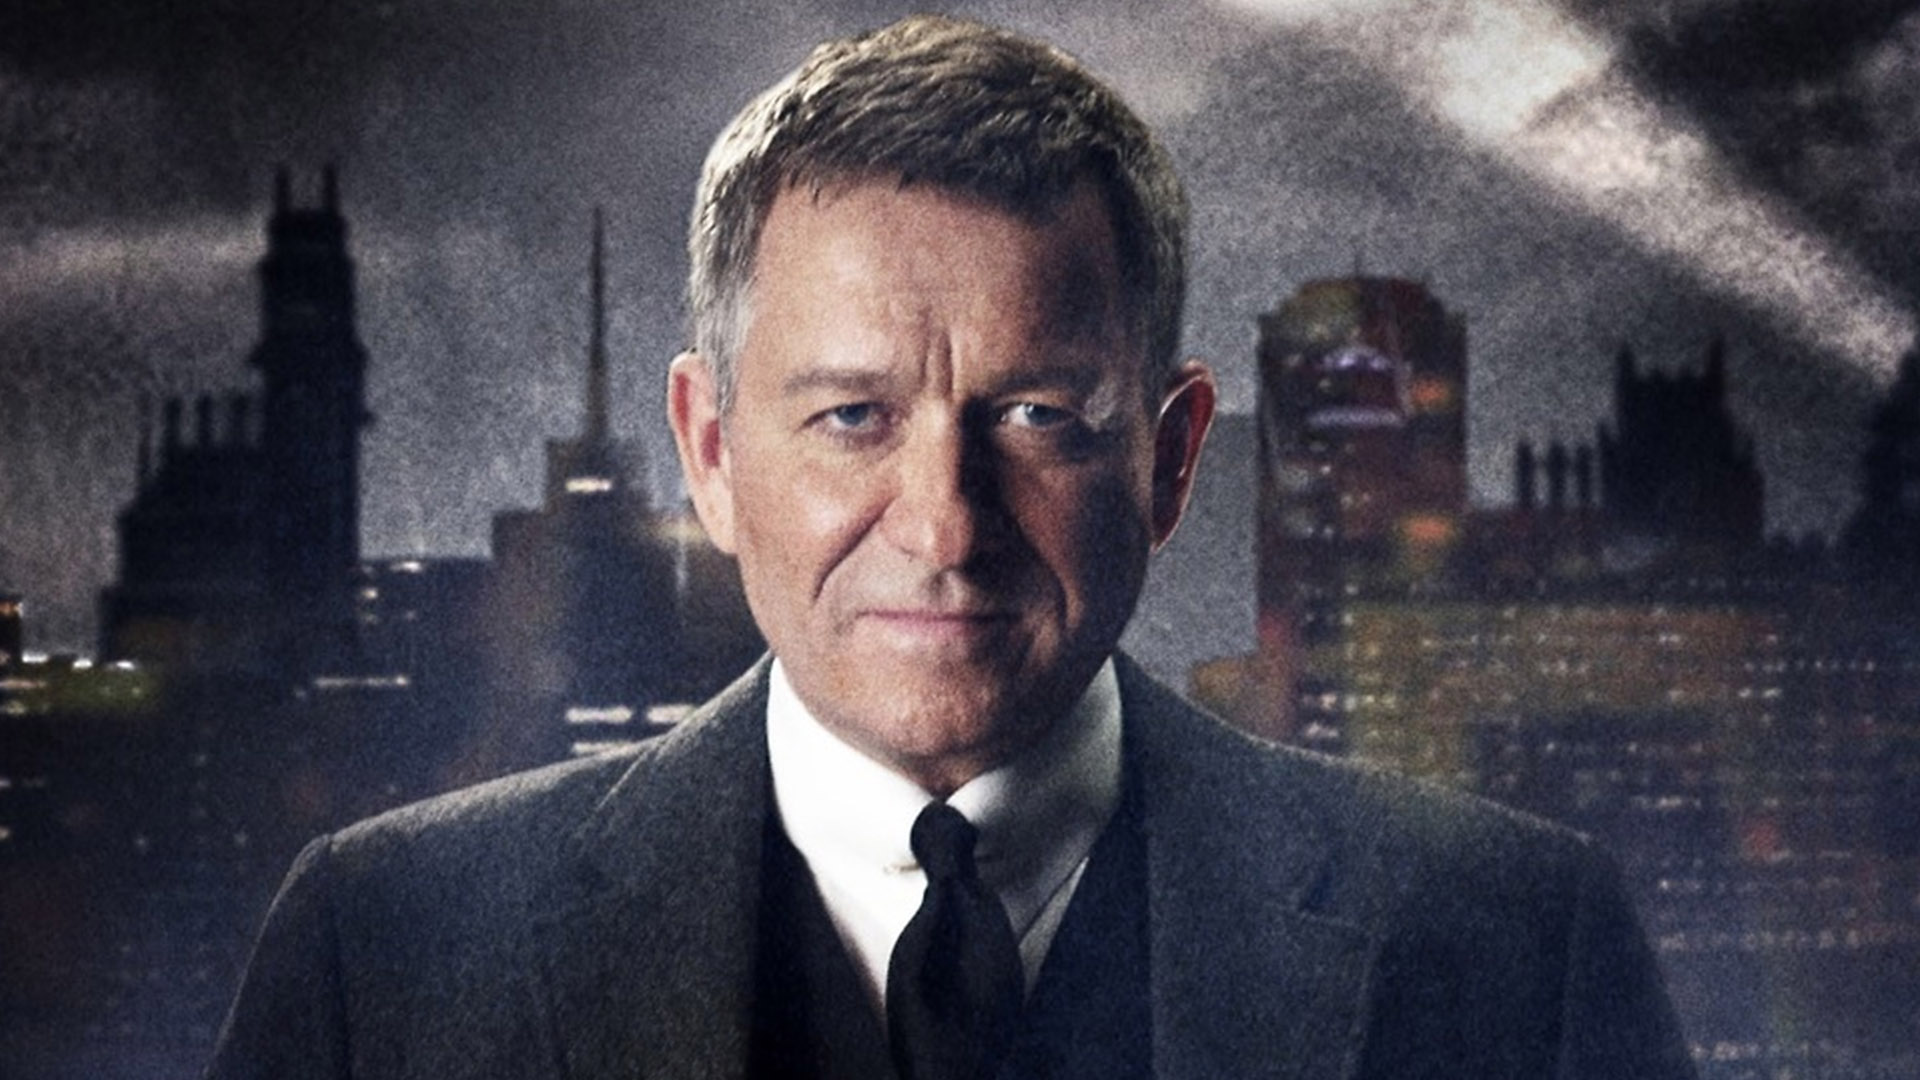 'Gotham' Creator Making 'Pennyworth' Series About Alfred For Epix